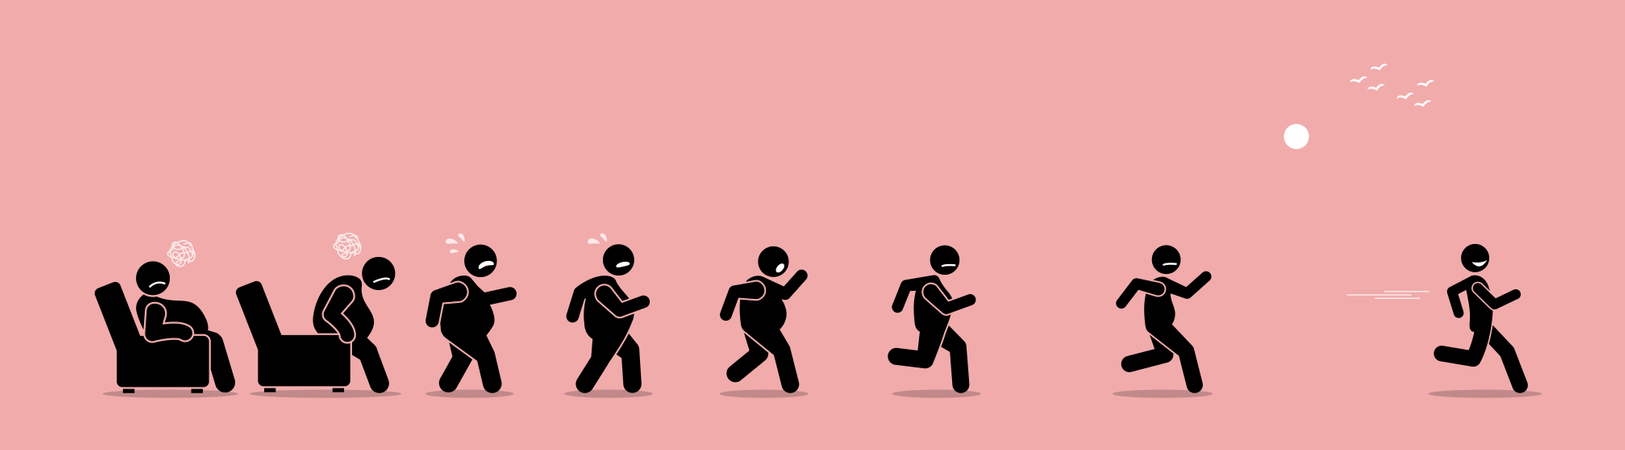 Fat man getting up, running, and become thin transformation Illustration